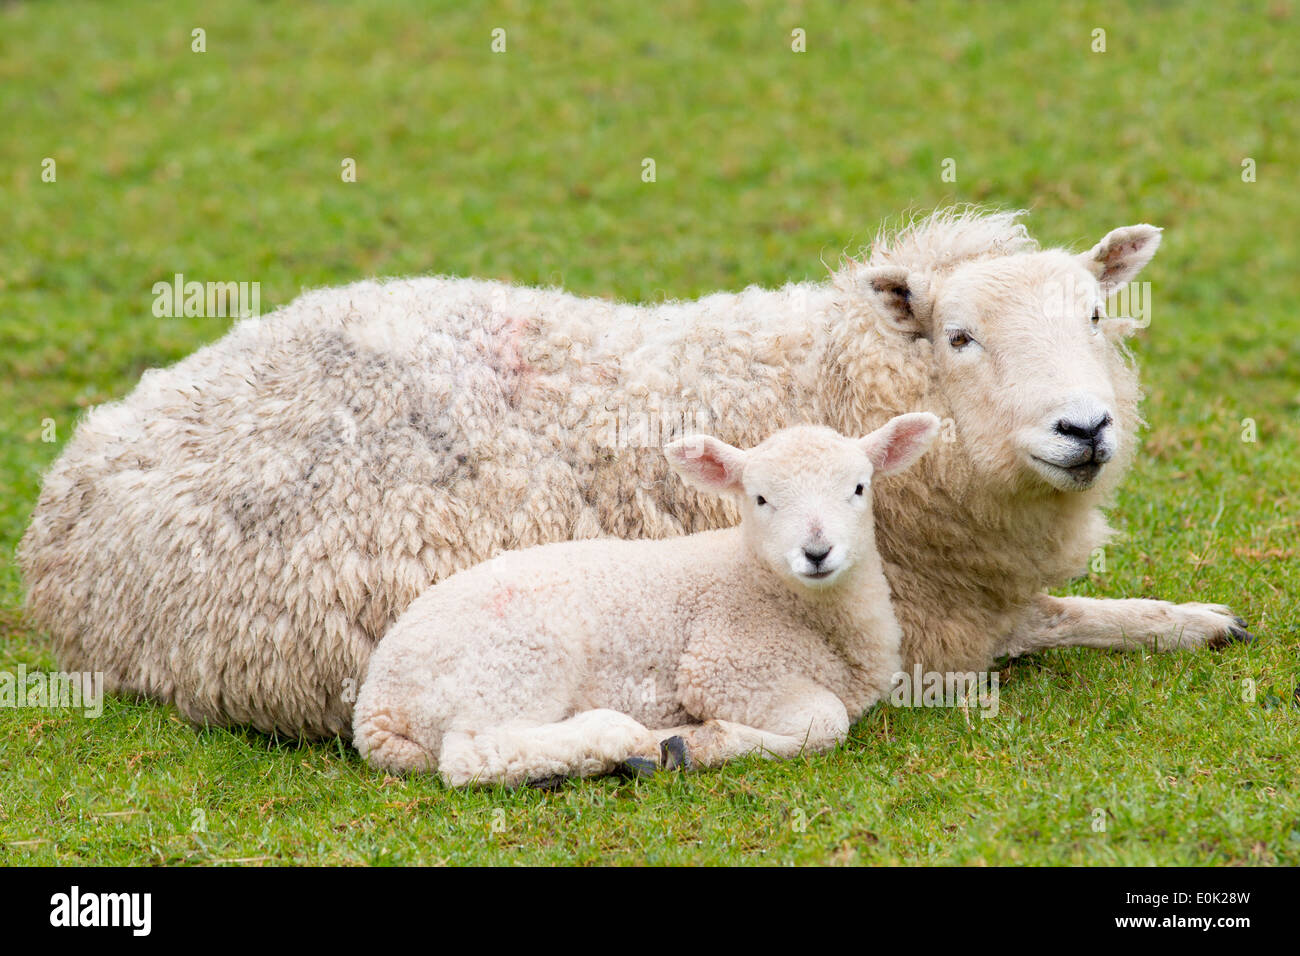 Sheep ewe and lamb in Exmoor National Park, Somerset, United Kingdom - Stock Image